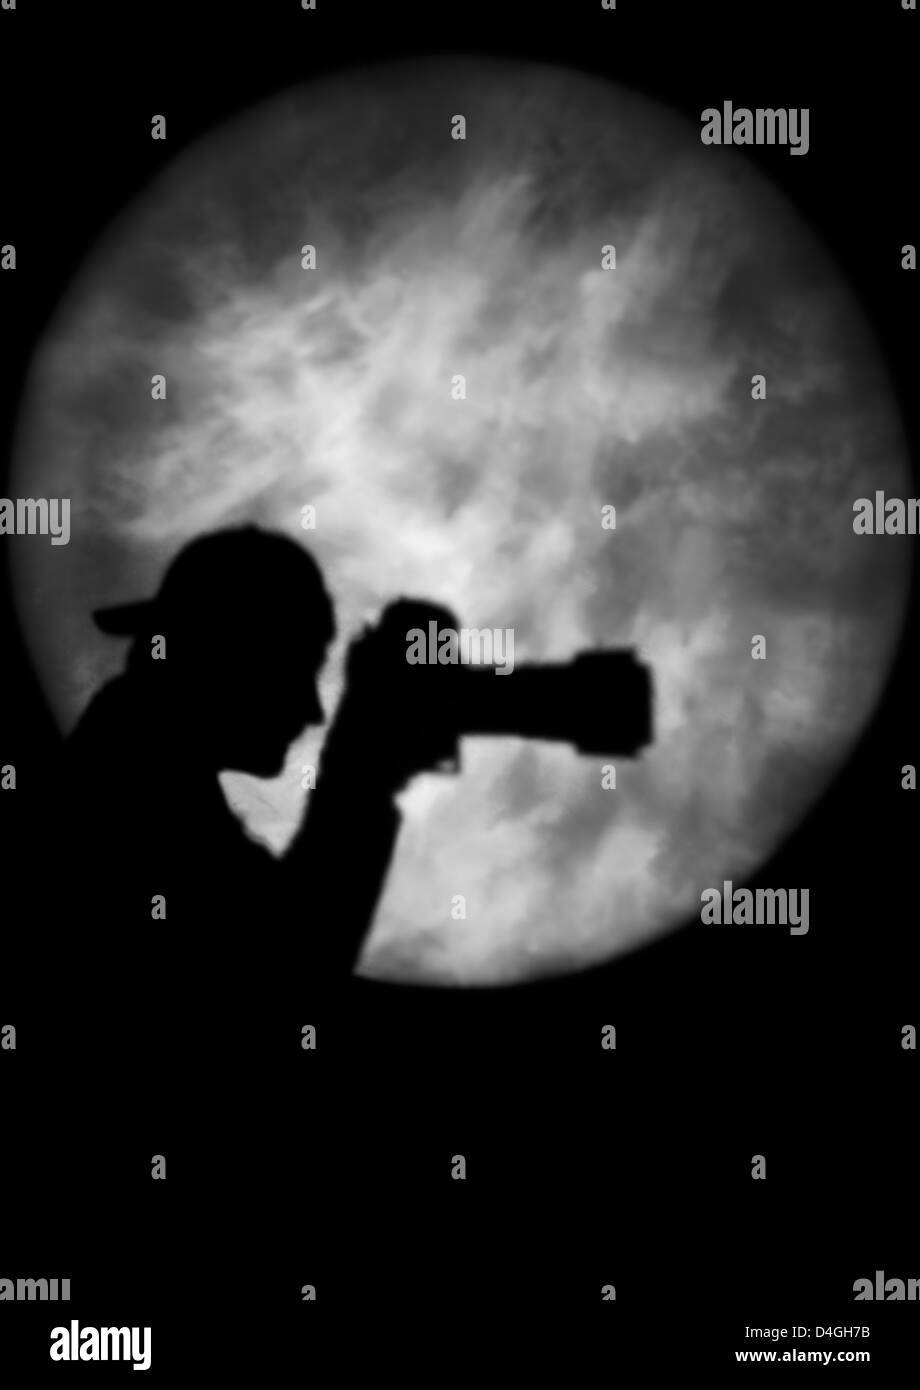 Silhouette of a man holding a camera in spotlight or moonlight (model released) Stock Photo